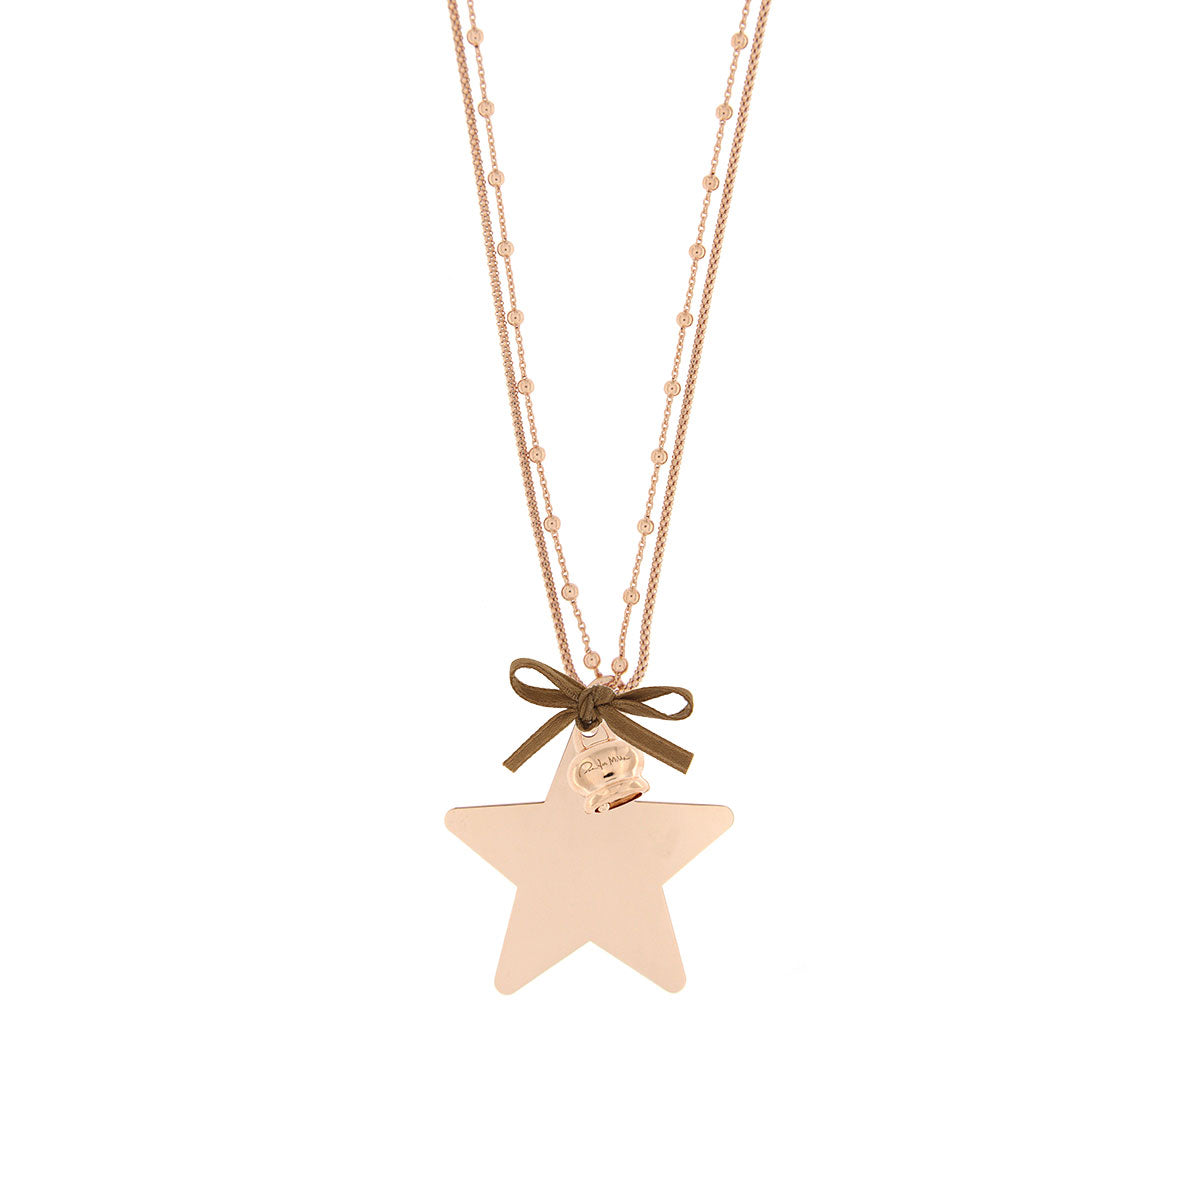 Necklaces - Double Chain Necklace with Star - 1 | Rue des Mille